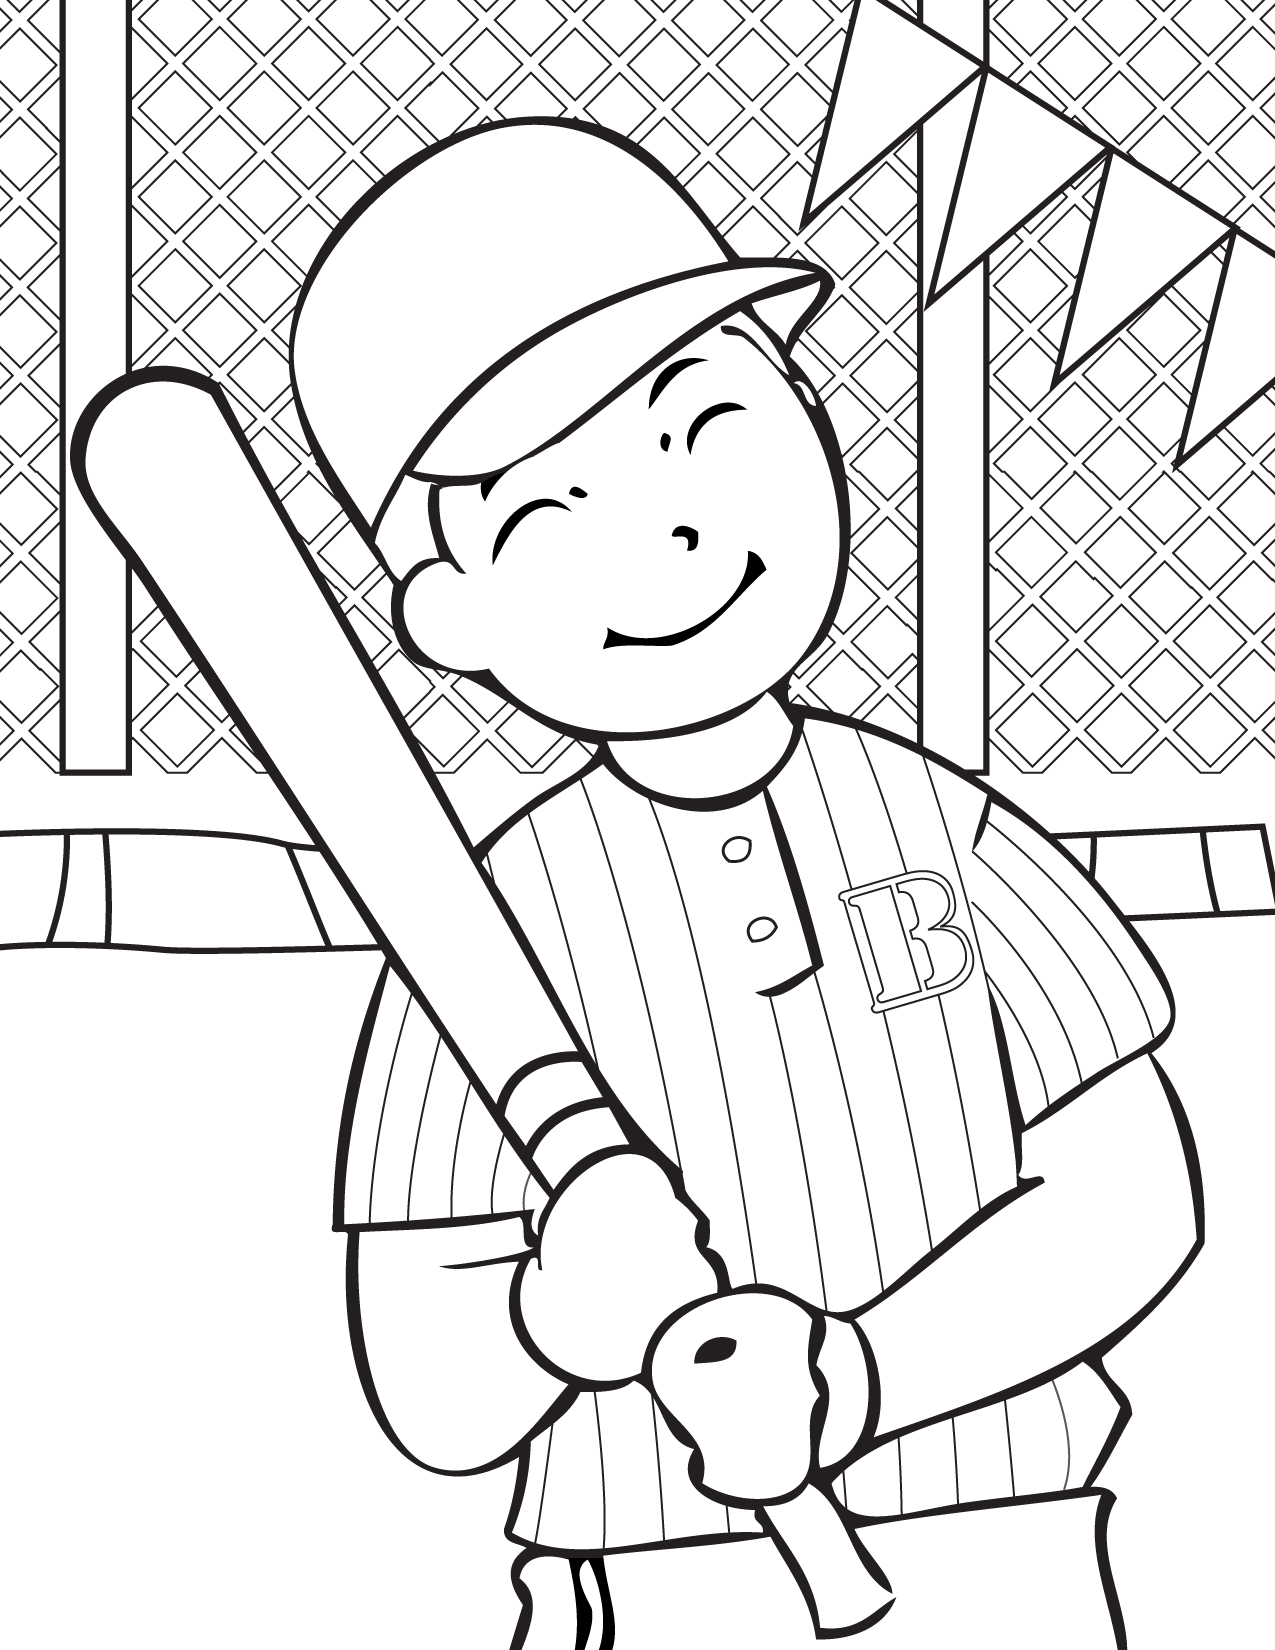 1275x1650 sports coloring pages page 2 of 2 got coloring pages - Sport Coloring Pages 2